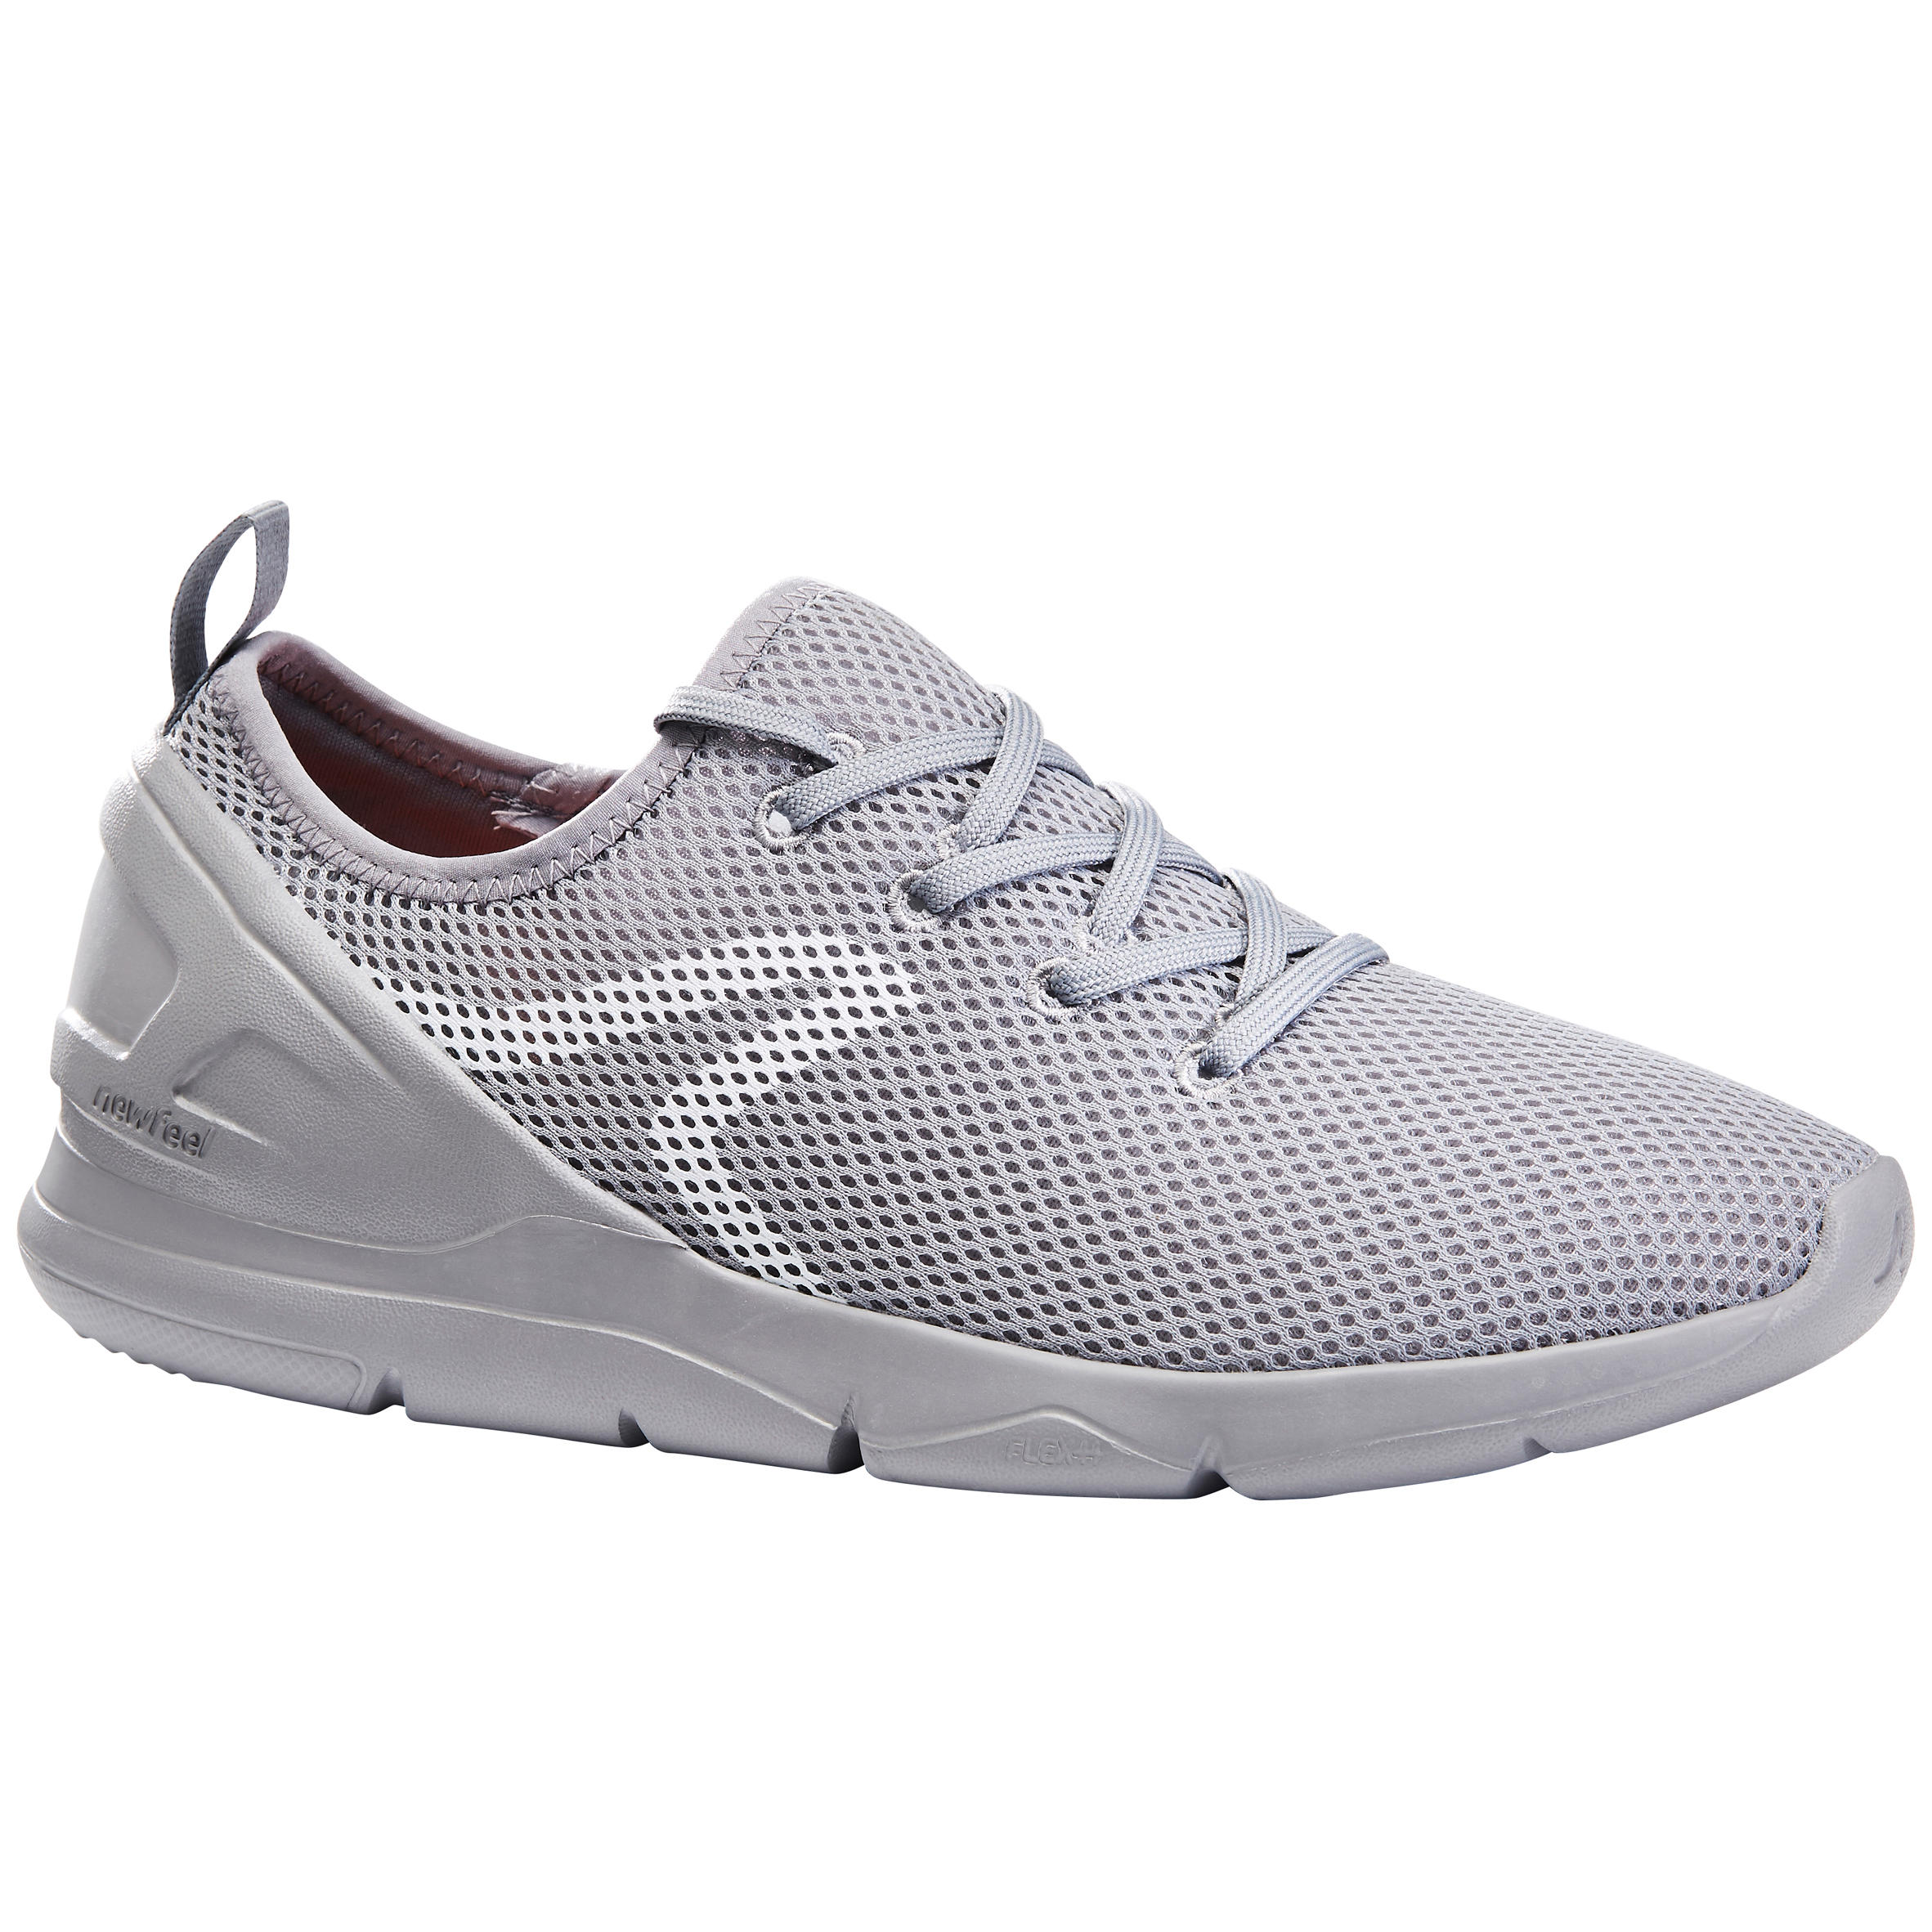 Zapatillas marcha deportiva mujer PW 100 gris